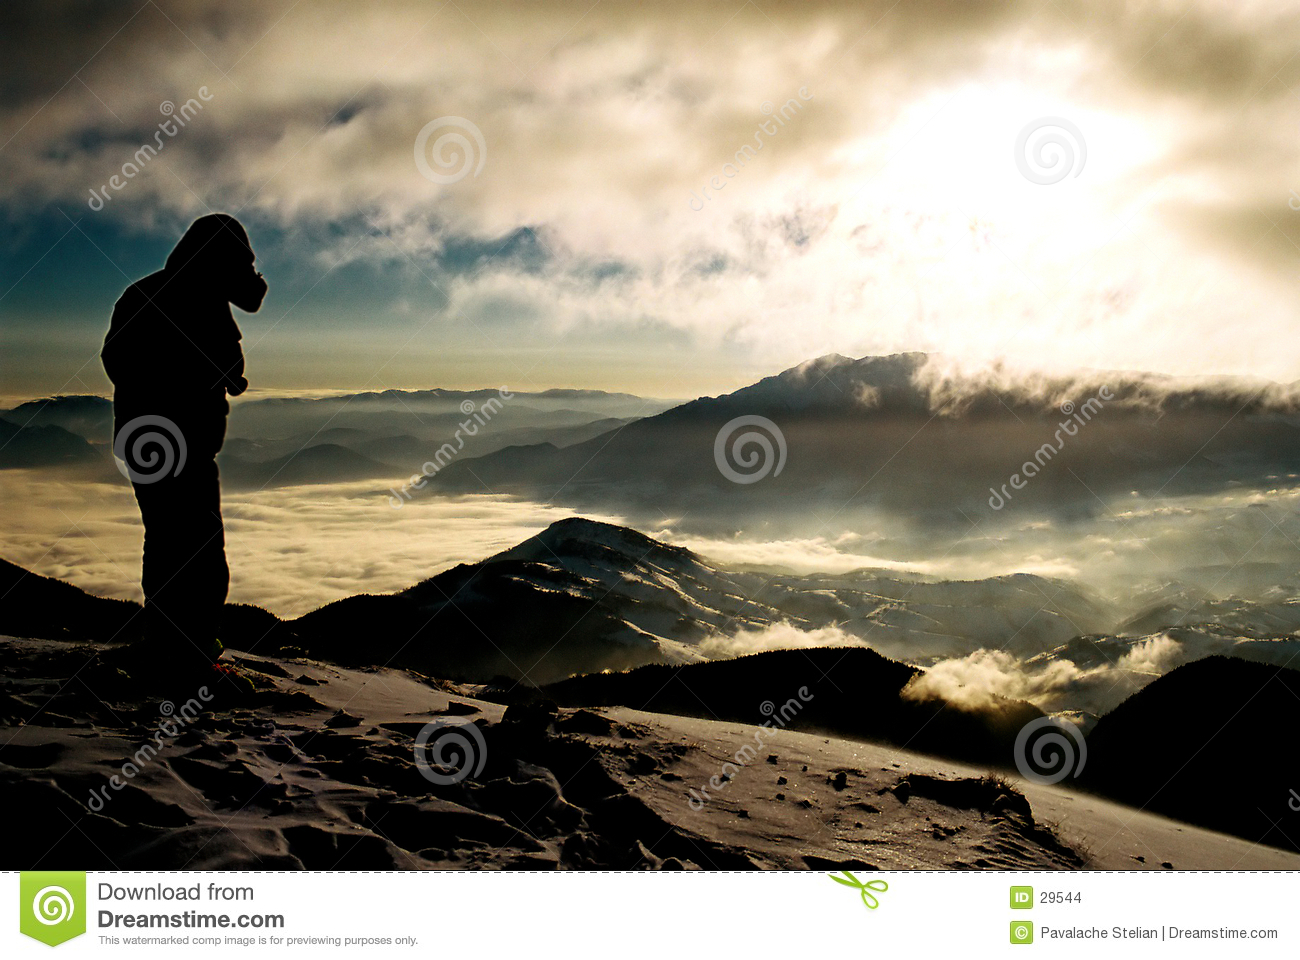 Mountain landscape with silhouette